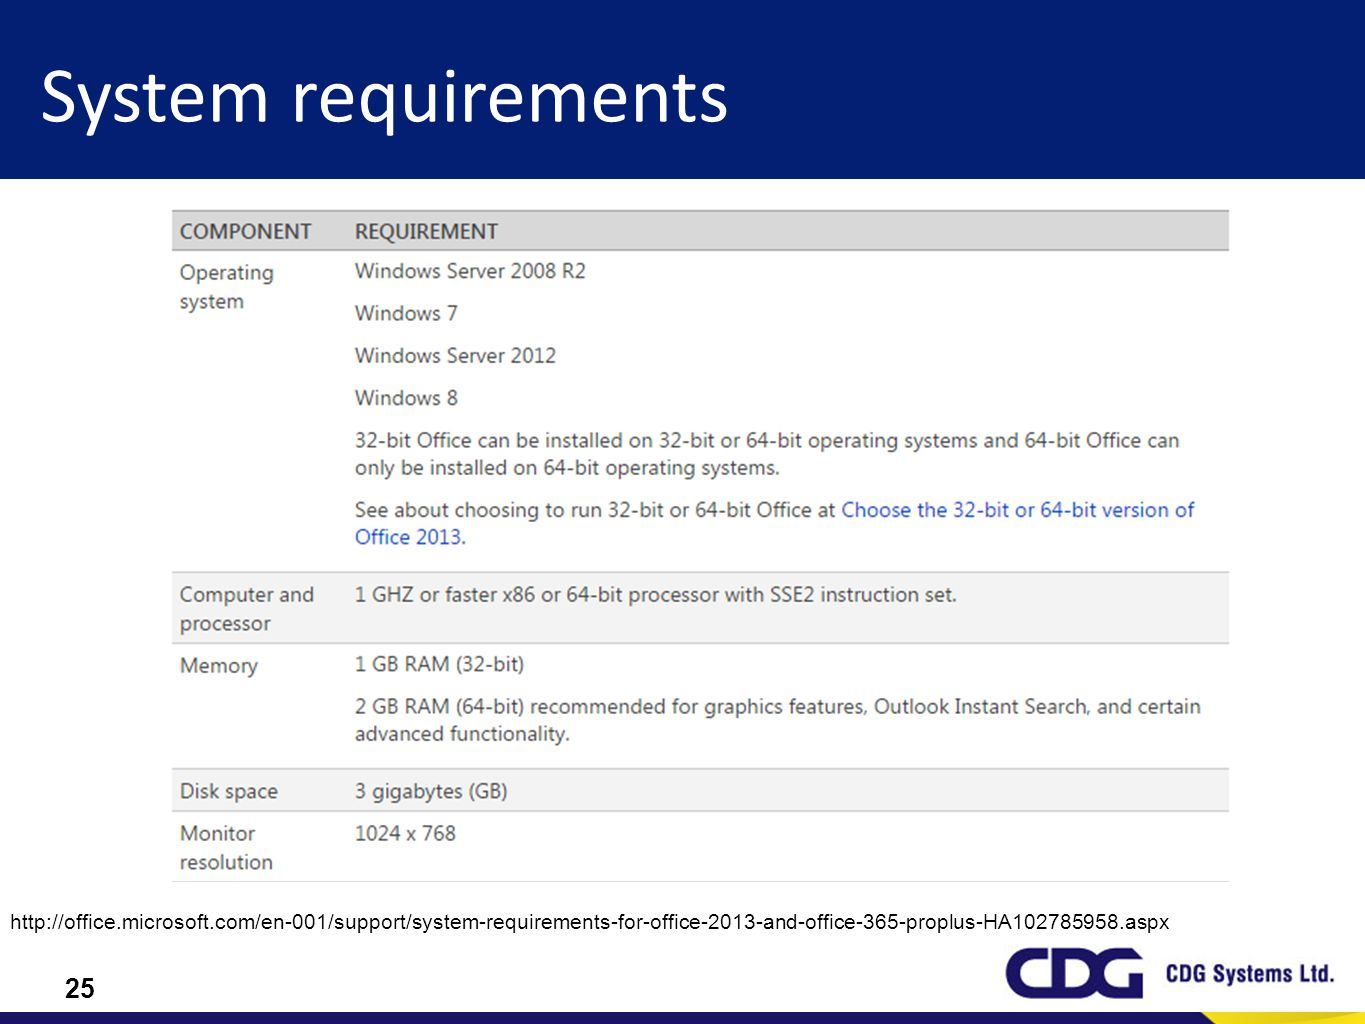 25 System requirements http://office.microsoft.com/en-001/support/system-requirements-for-office-2013-and-office-365-proplus-HA102785958.aspx